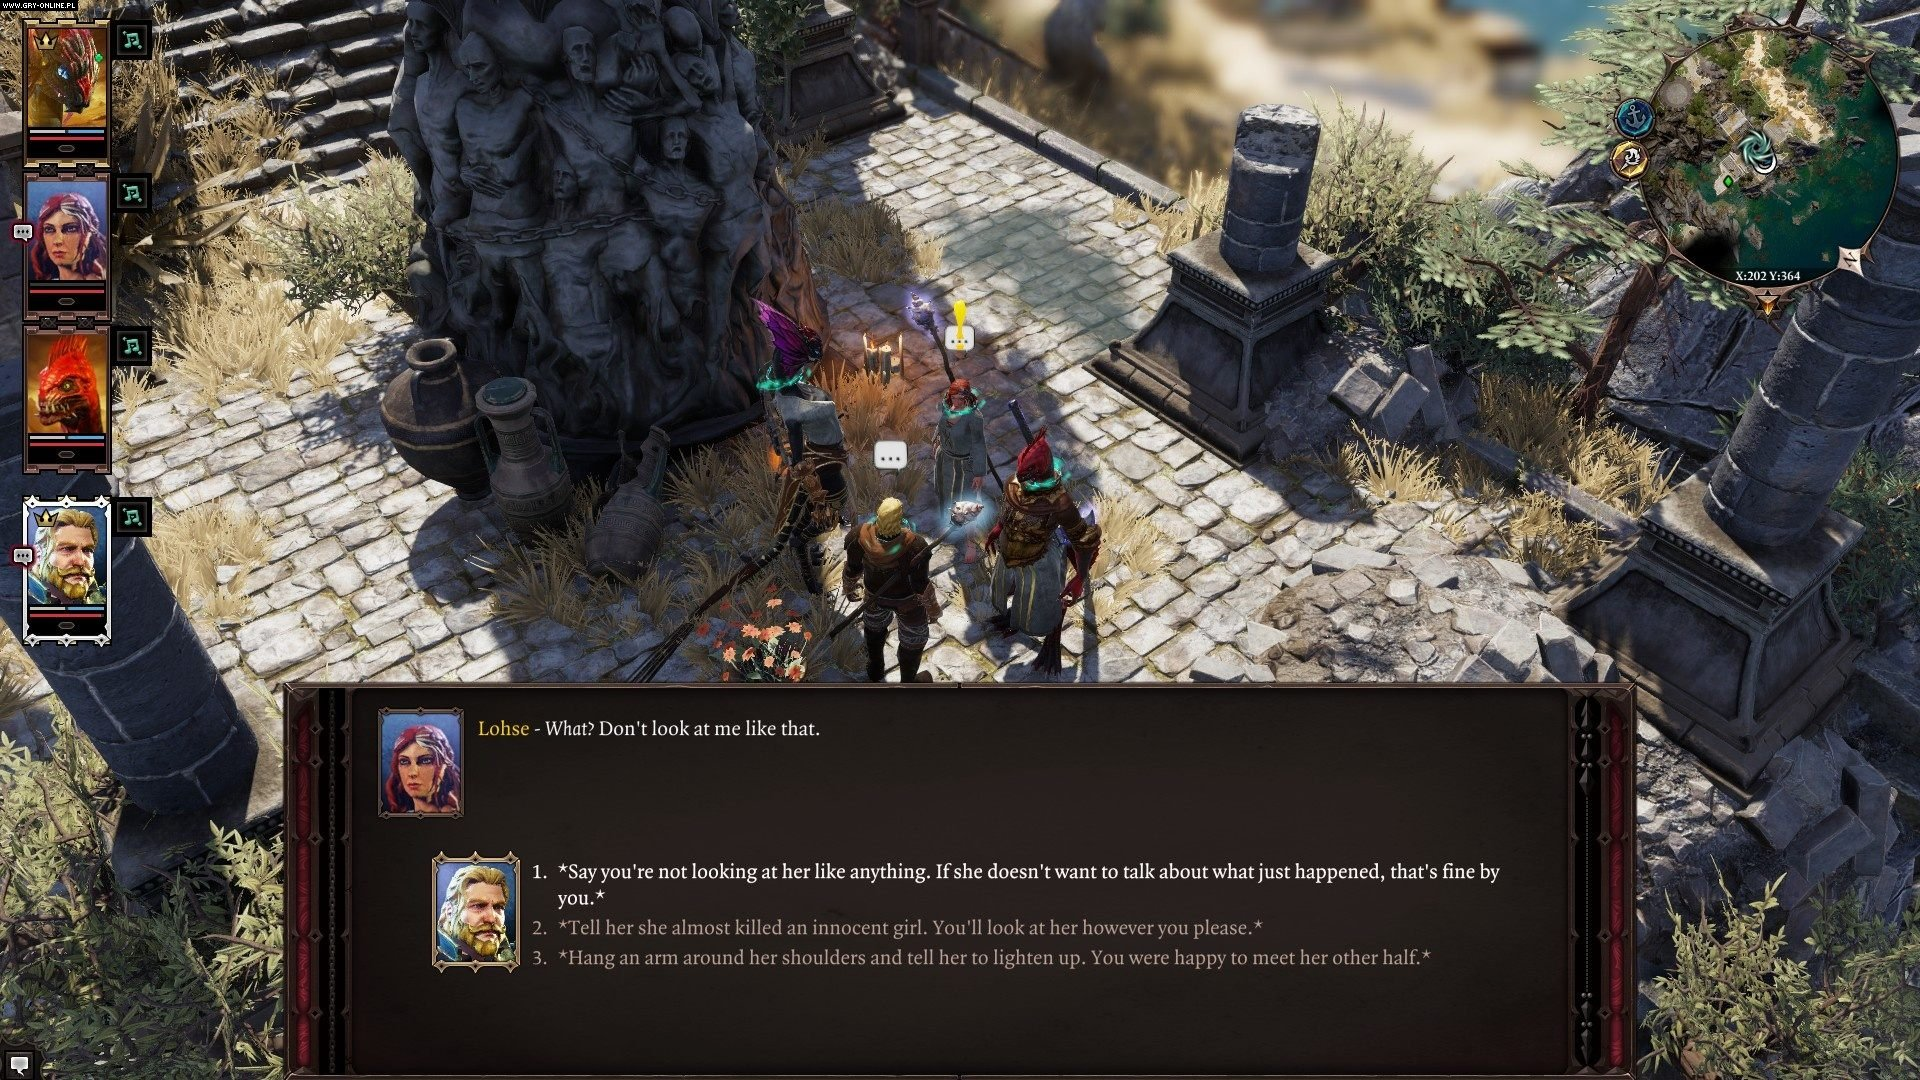 Divinity: Original Sin II - Definitive Edition PC, PS4, XONE Games Image 35/299, Larian Studios